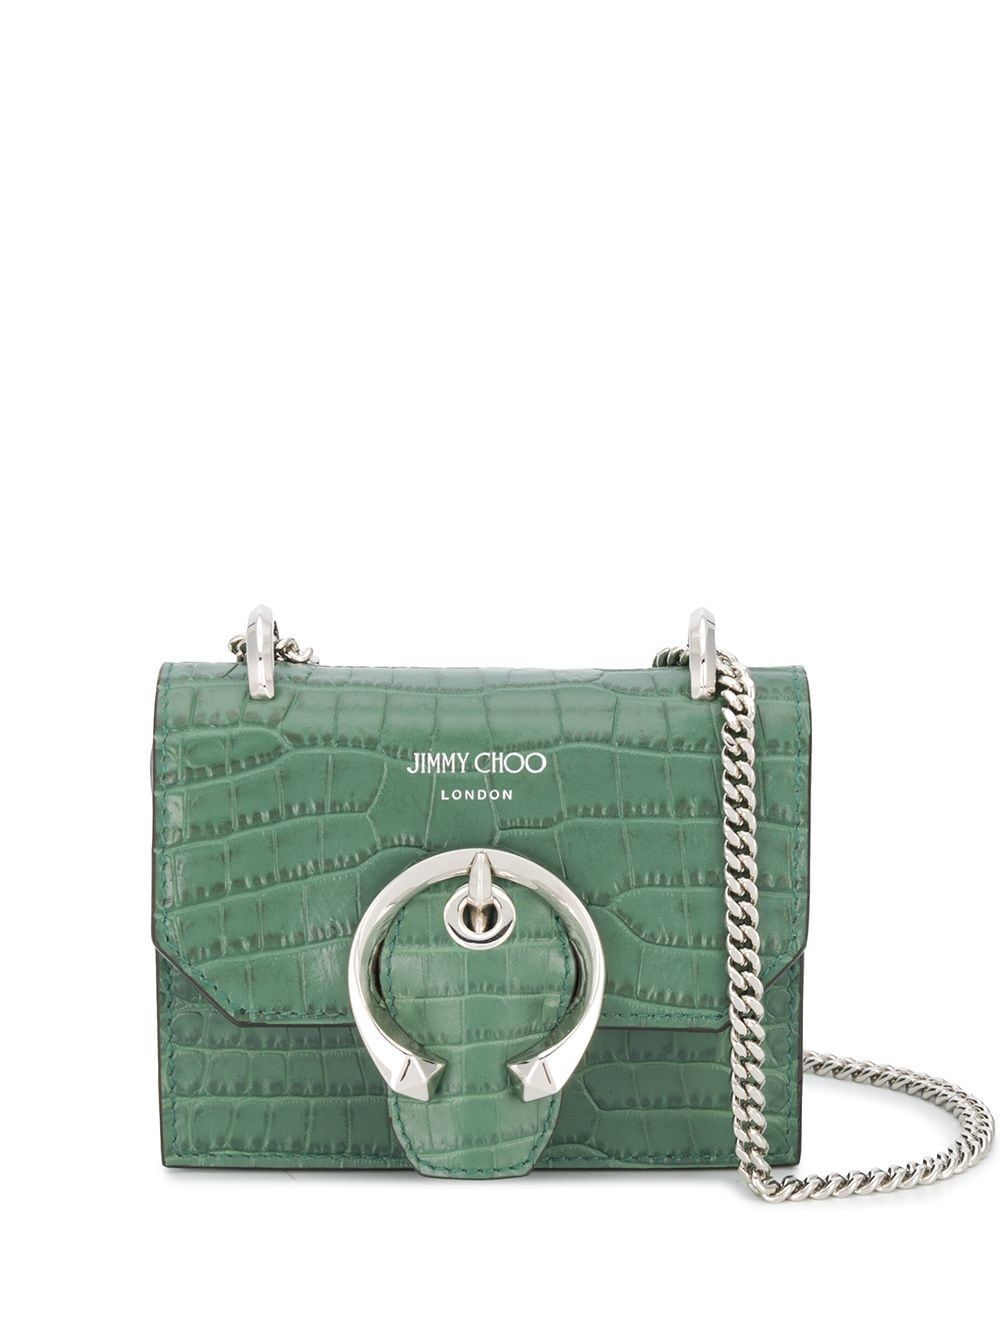 Jimmy Choo JIMMY CHOO WOMEN'S MINIPARISCCLCACTUS GREEN LEATHER SHOULDER BAG